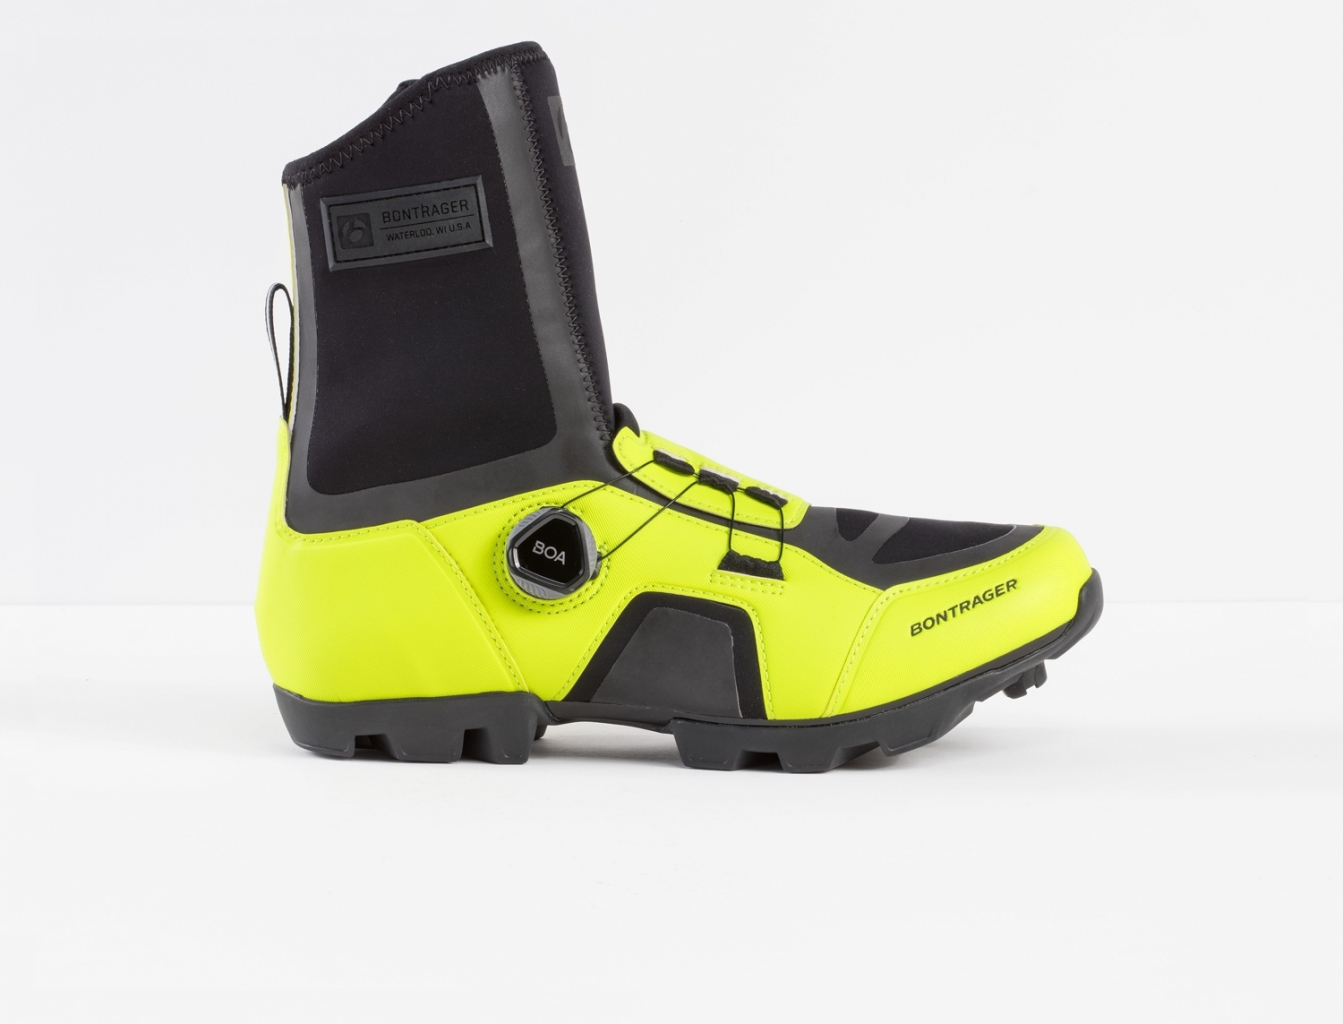 BONTRAGER JFW WINTER yellow